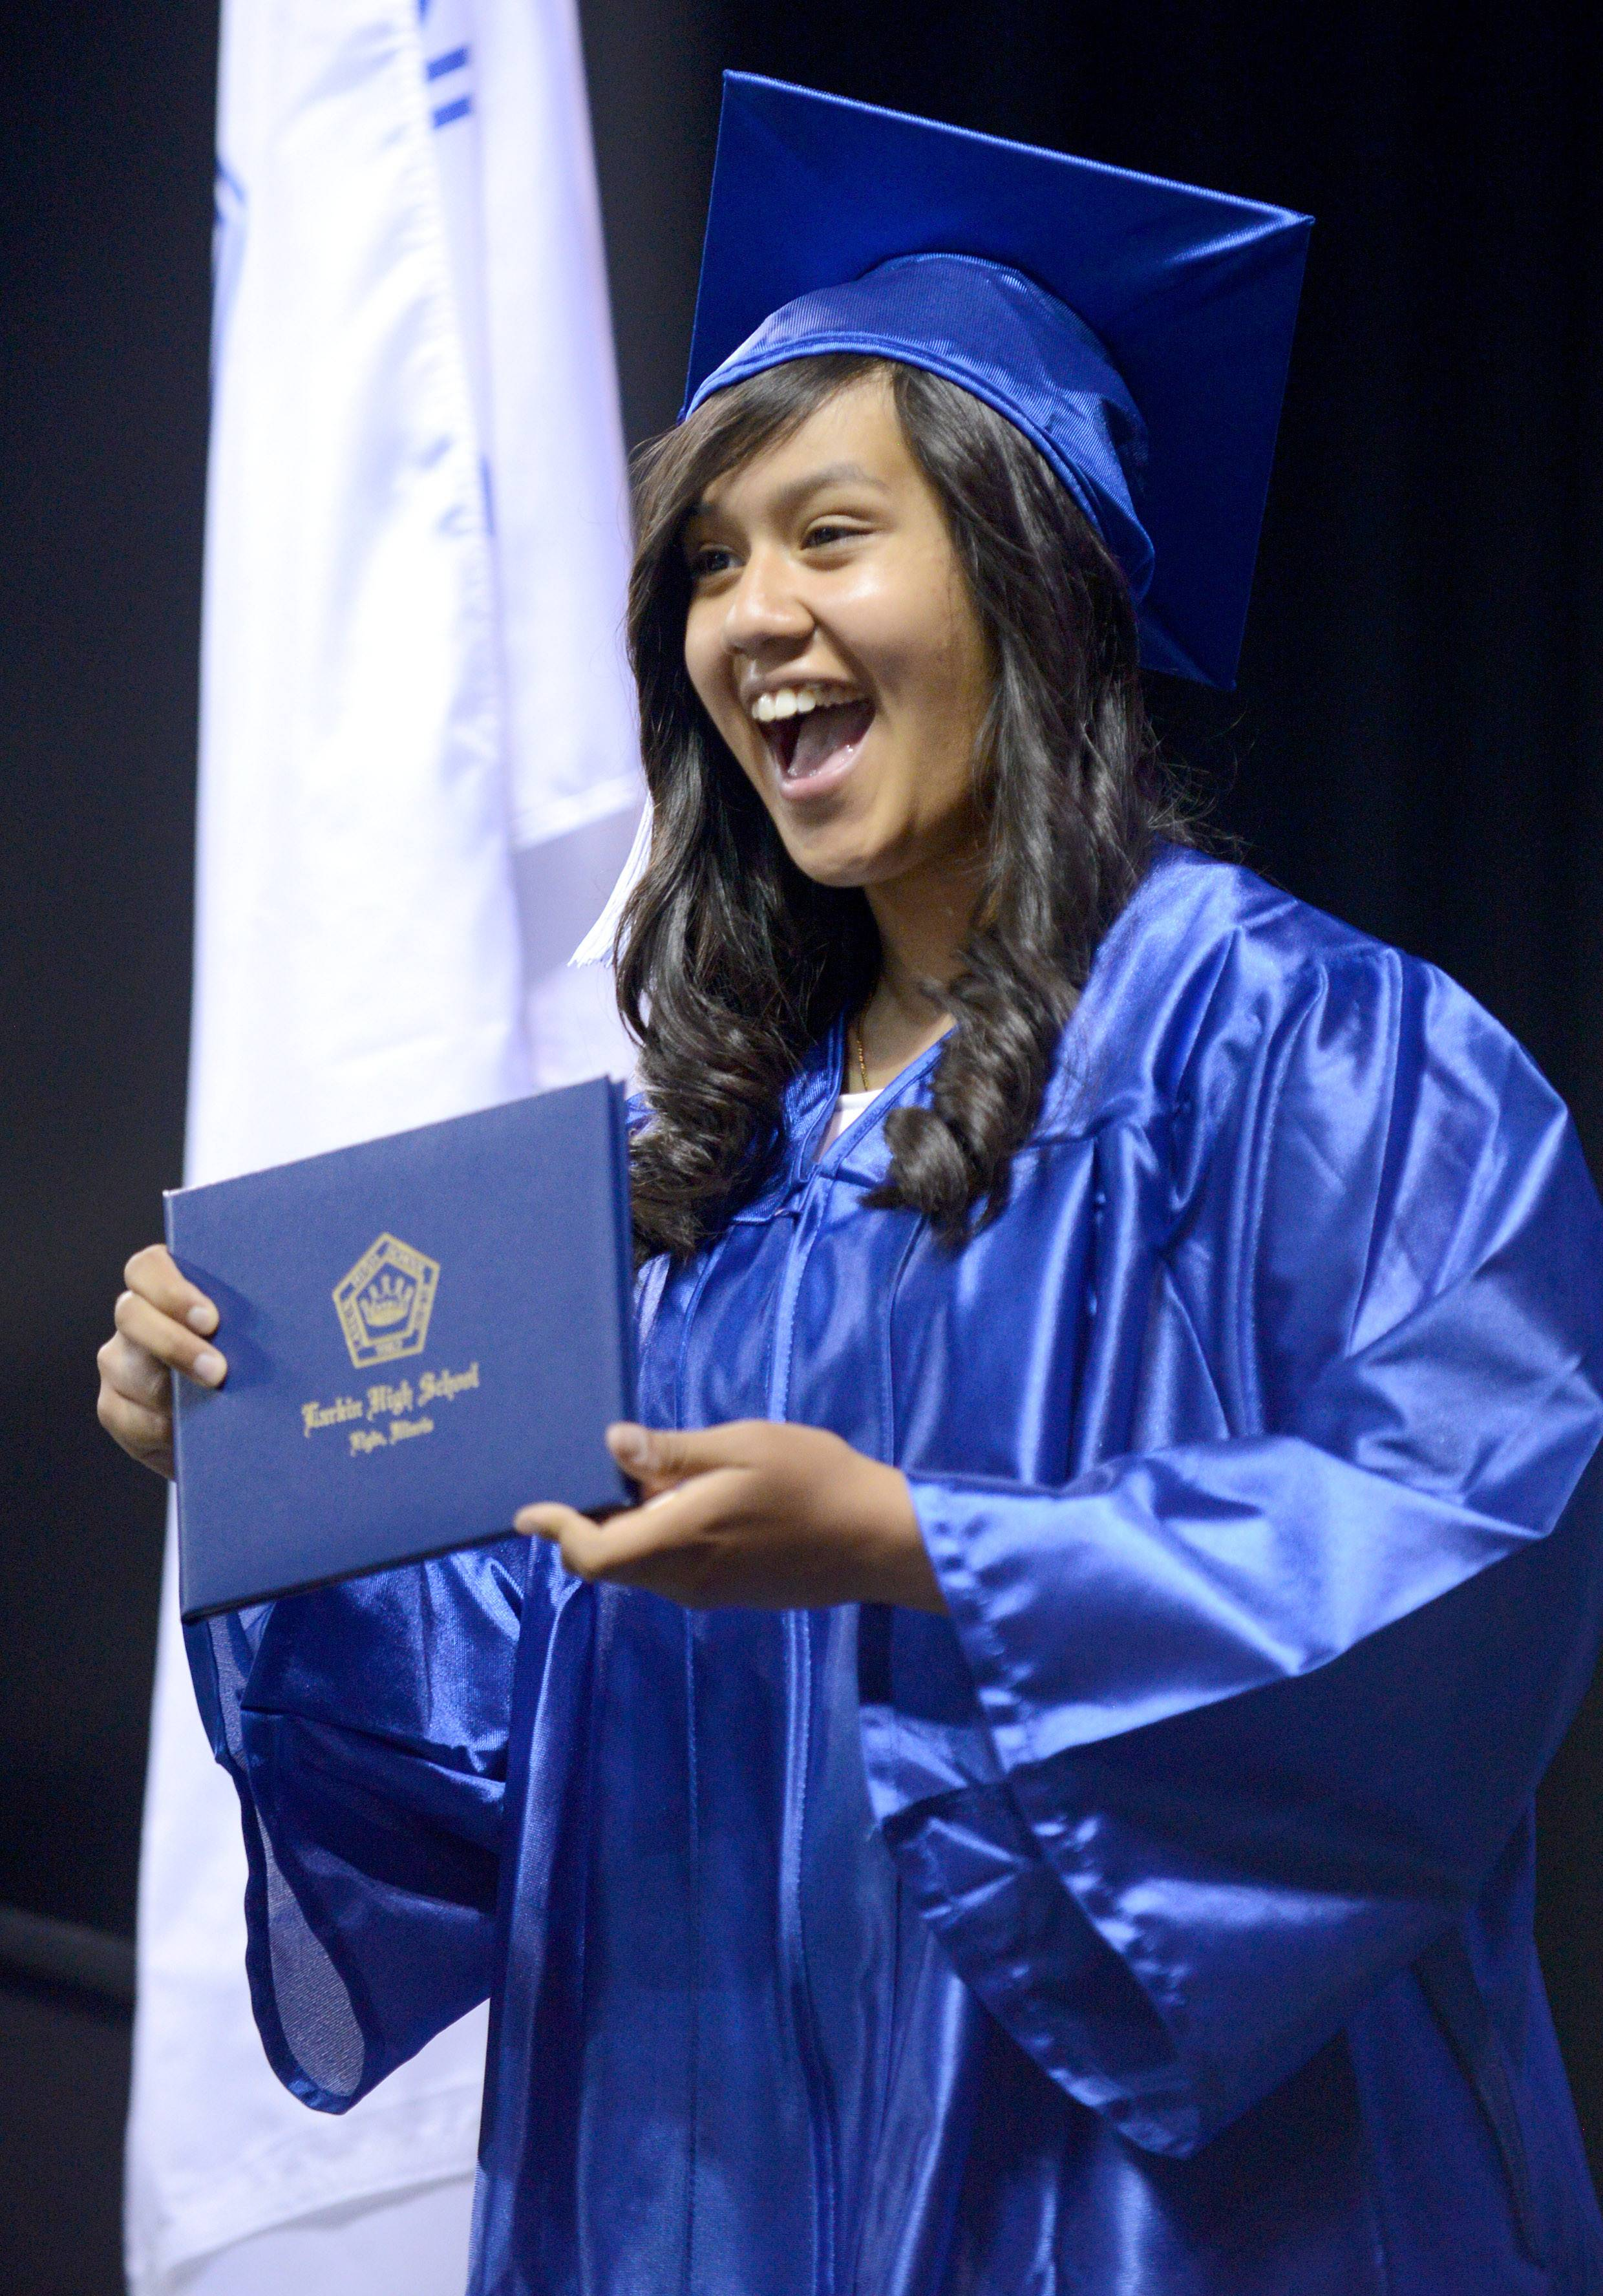 Meryl Hasana of Elgin shows off her diploma to her cheering cousins in the stands at Larkin High School's commencement ceremony at the Sears Centre in Hoffman Estates on Saturday, May 24.